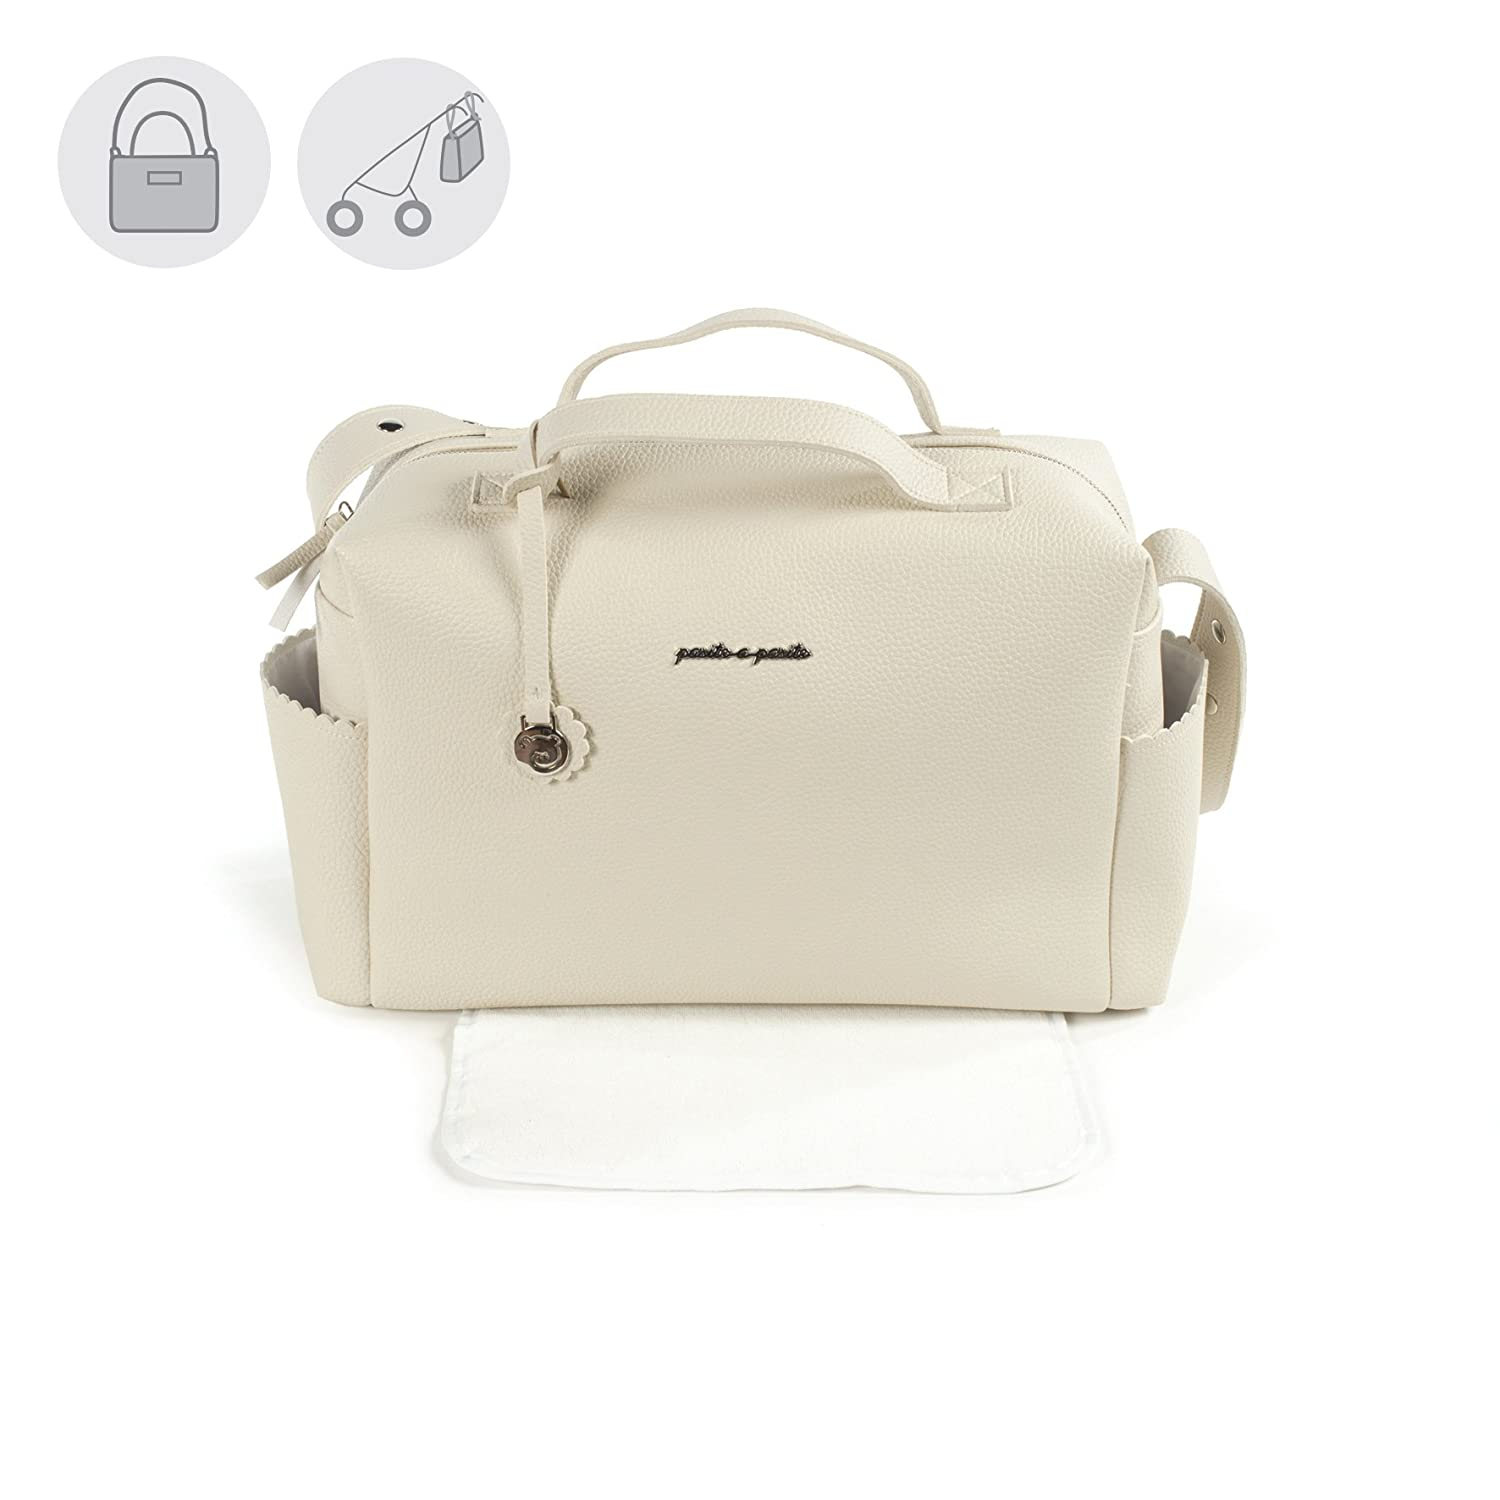 pasito A pasito trousseau biscuit  –   sac, Unisexe beige